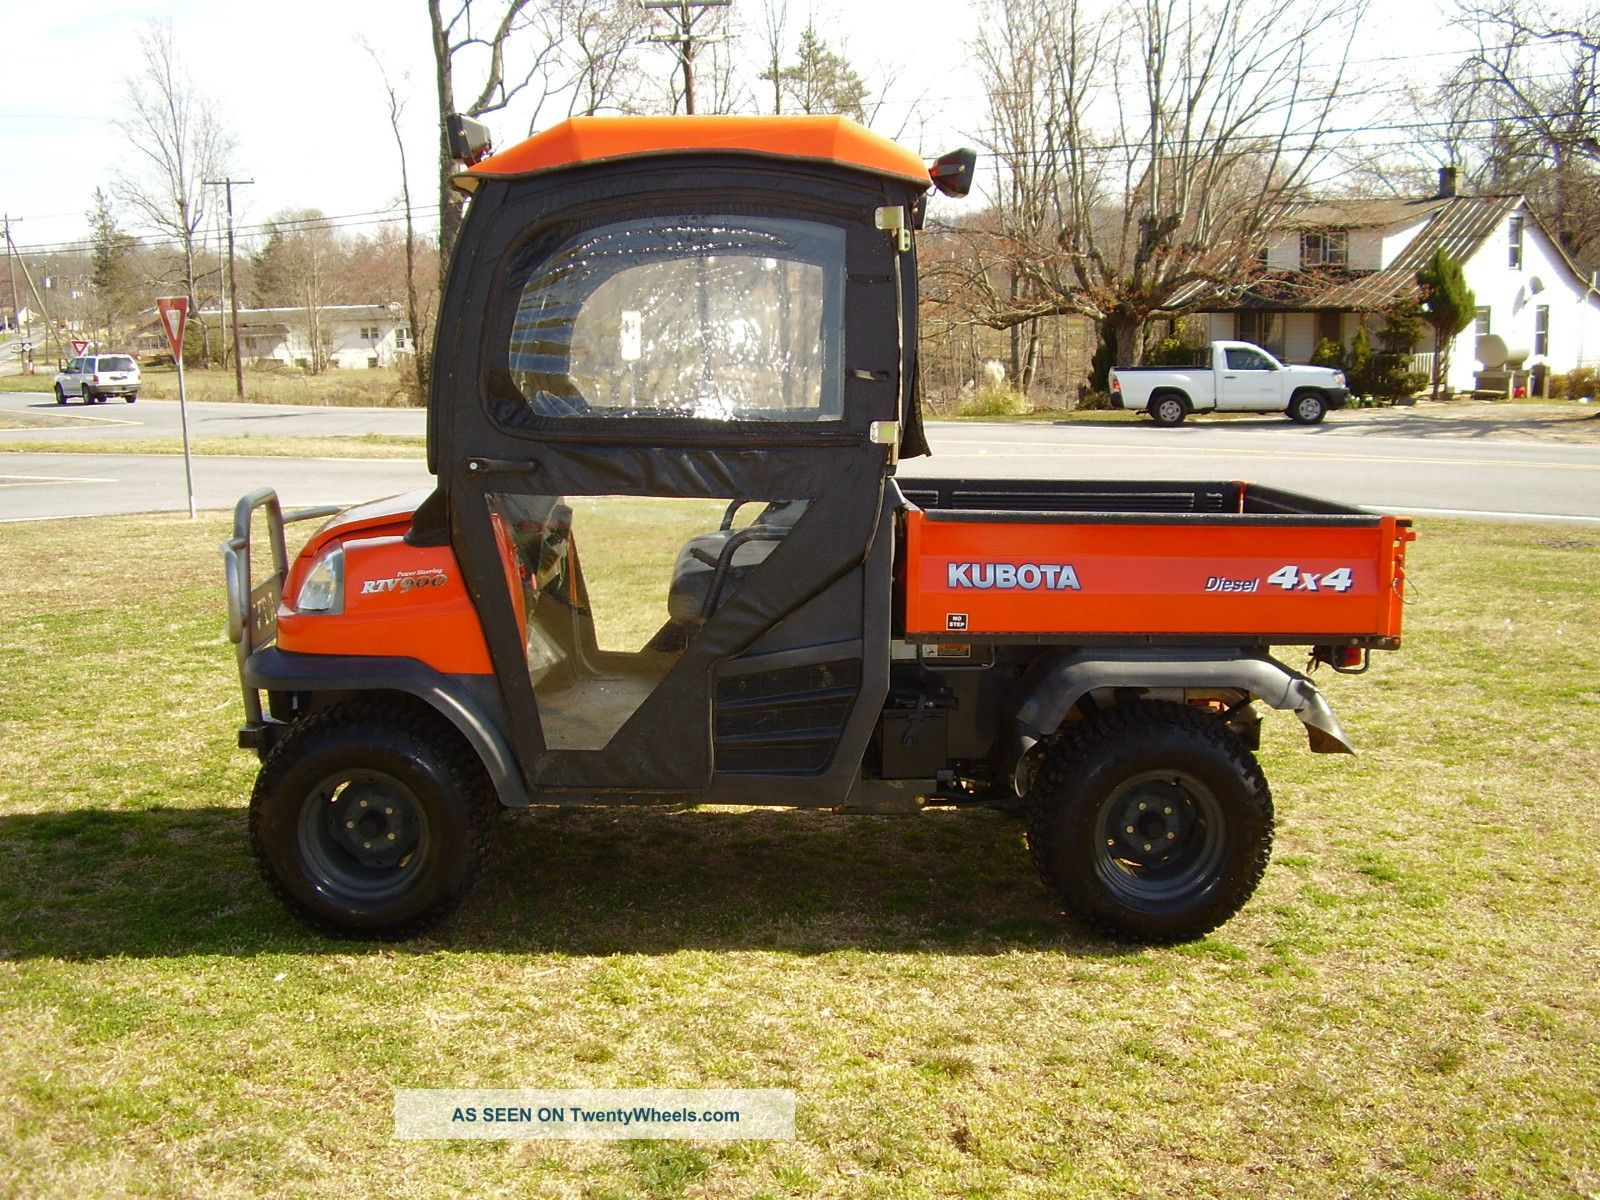 Kubota Rtv 900 Enclosed Cab With Heat 4x4 Only 293 Hours Utility Vehicles photo